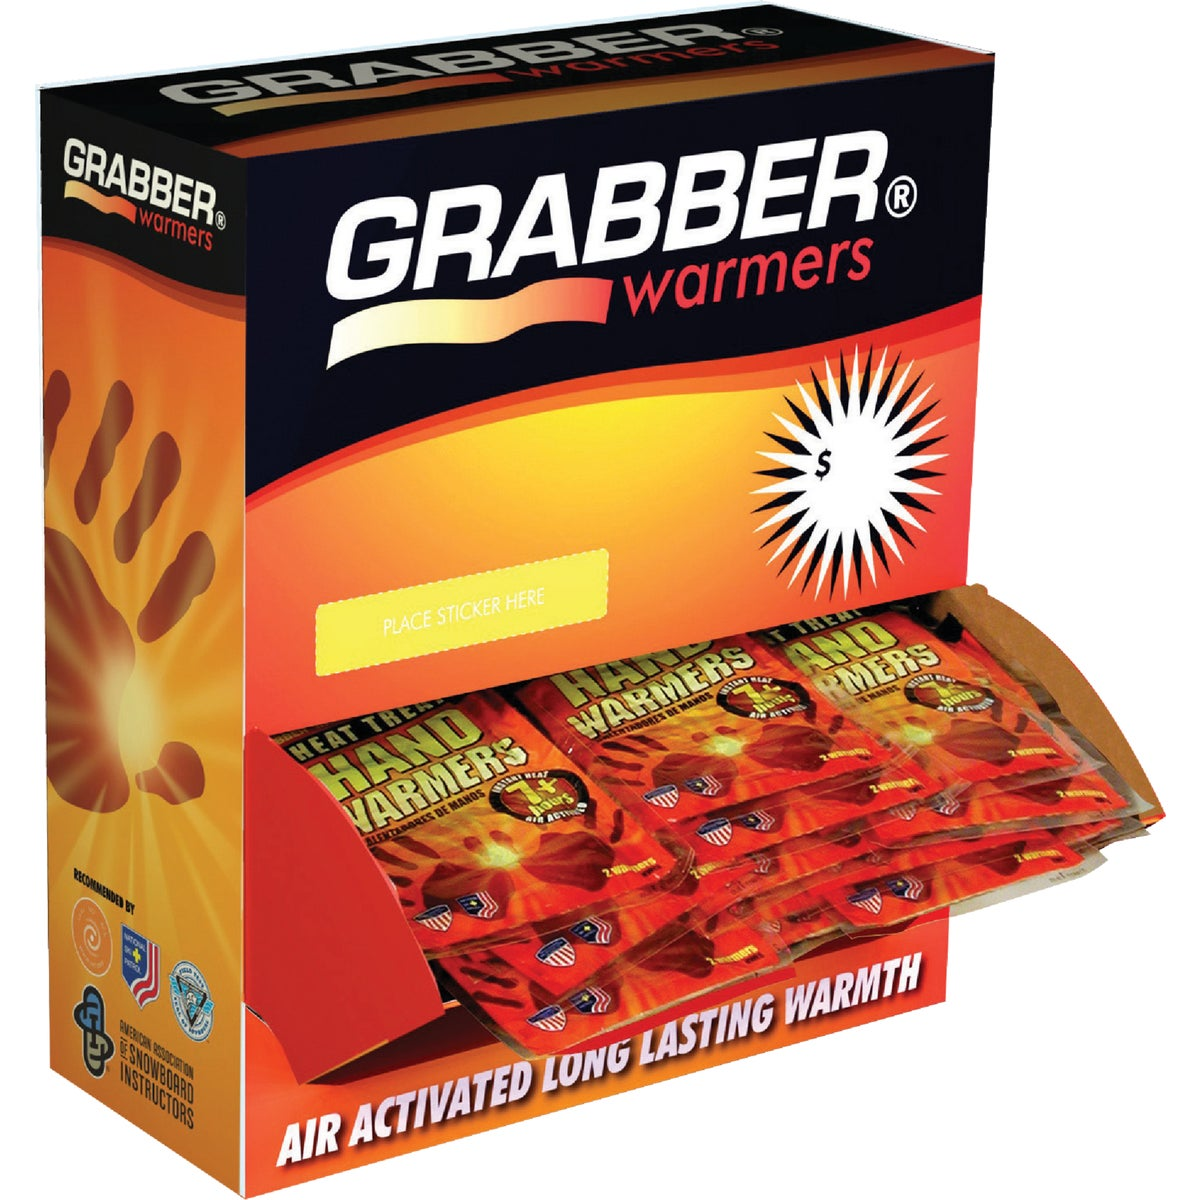 120 PAIR HAND WARMERS - HWES120 by Grabber Performance